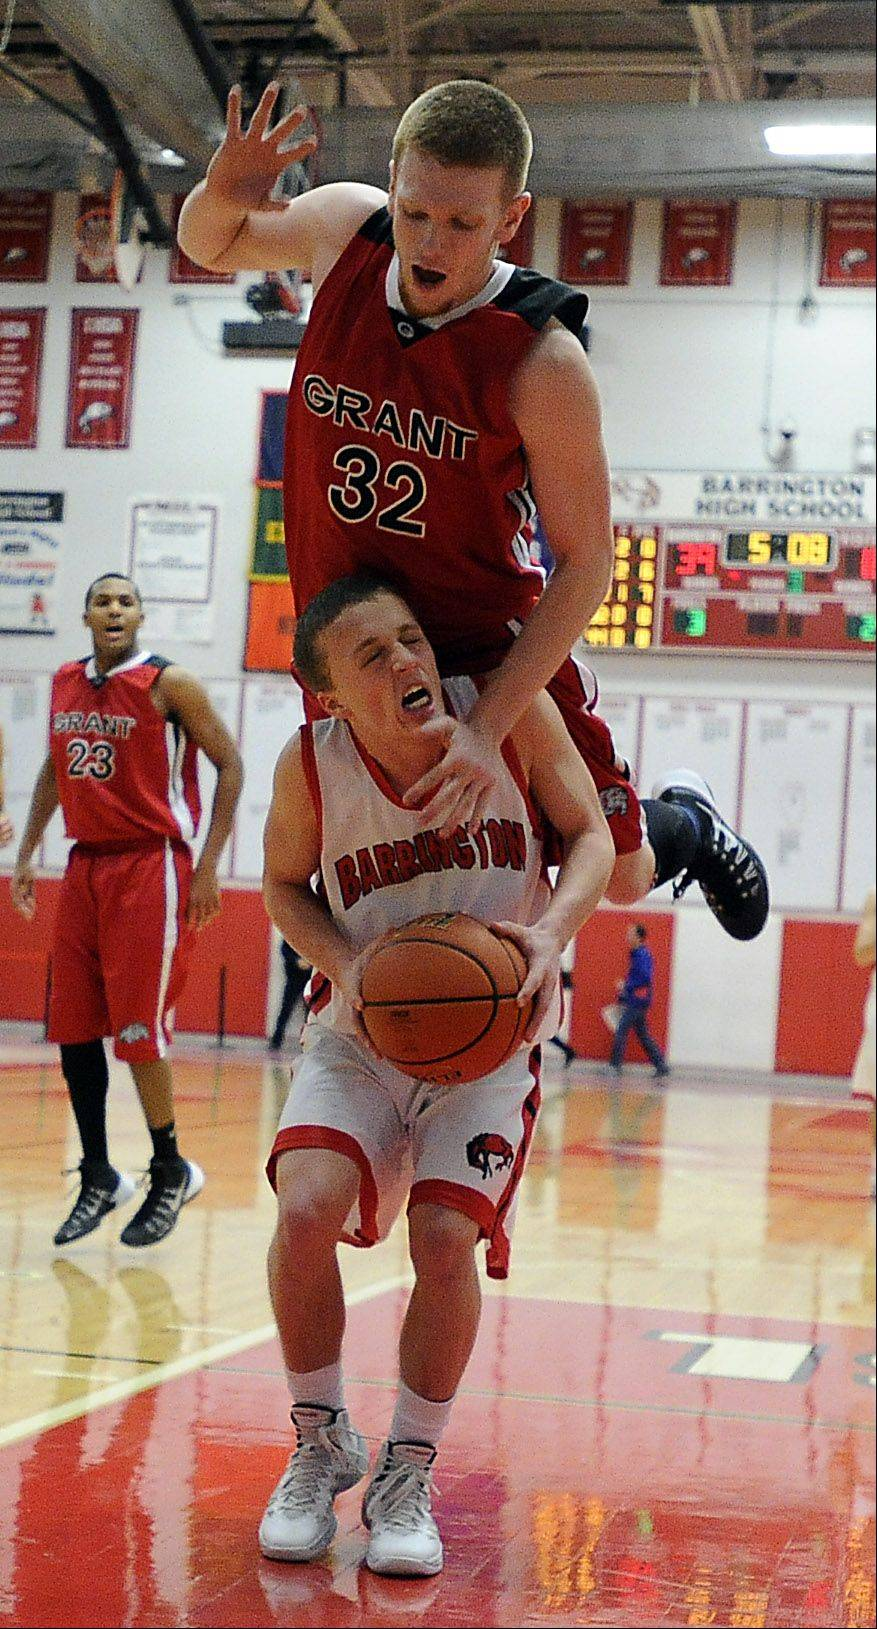 Grant�s Devin Bald goes up and over Barrington�s Jake Orr on Friday at Barrington.